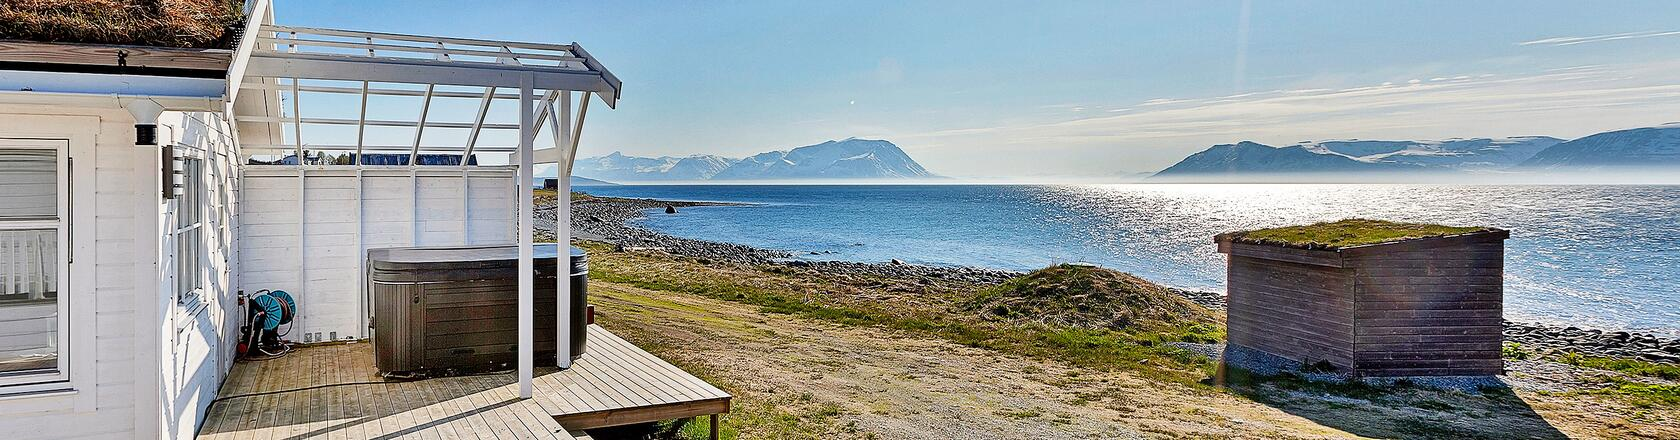 Vest Finnmark in Norway - Rent a holiday home in with DanCenter